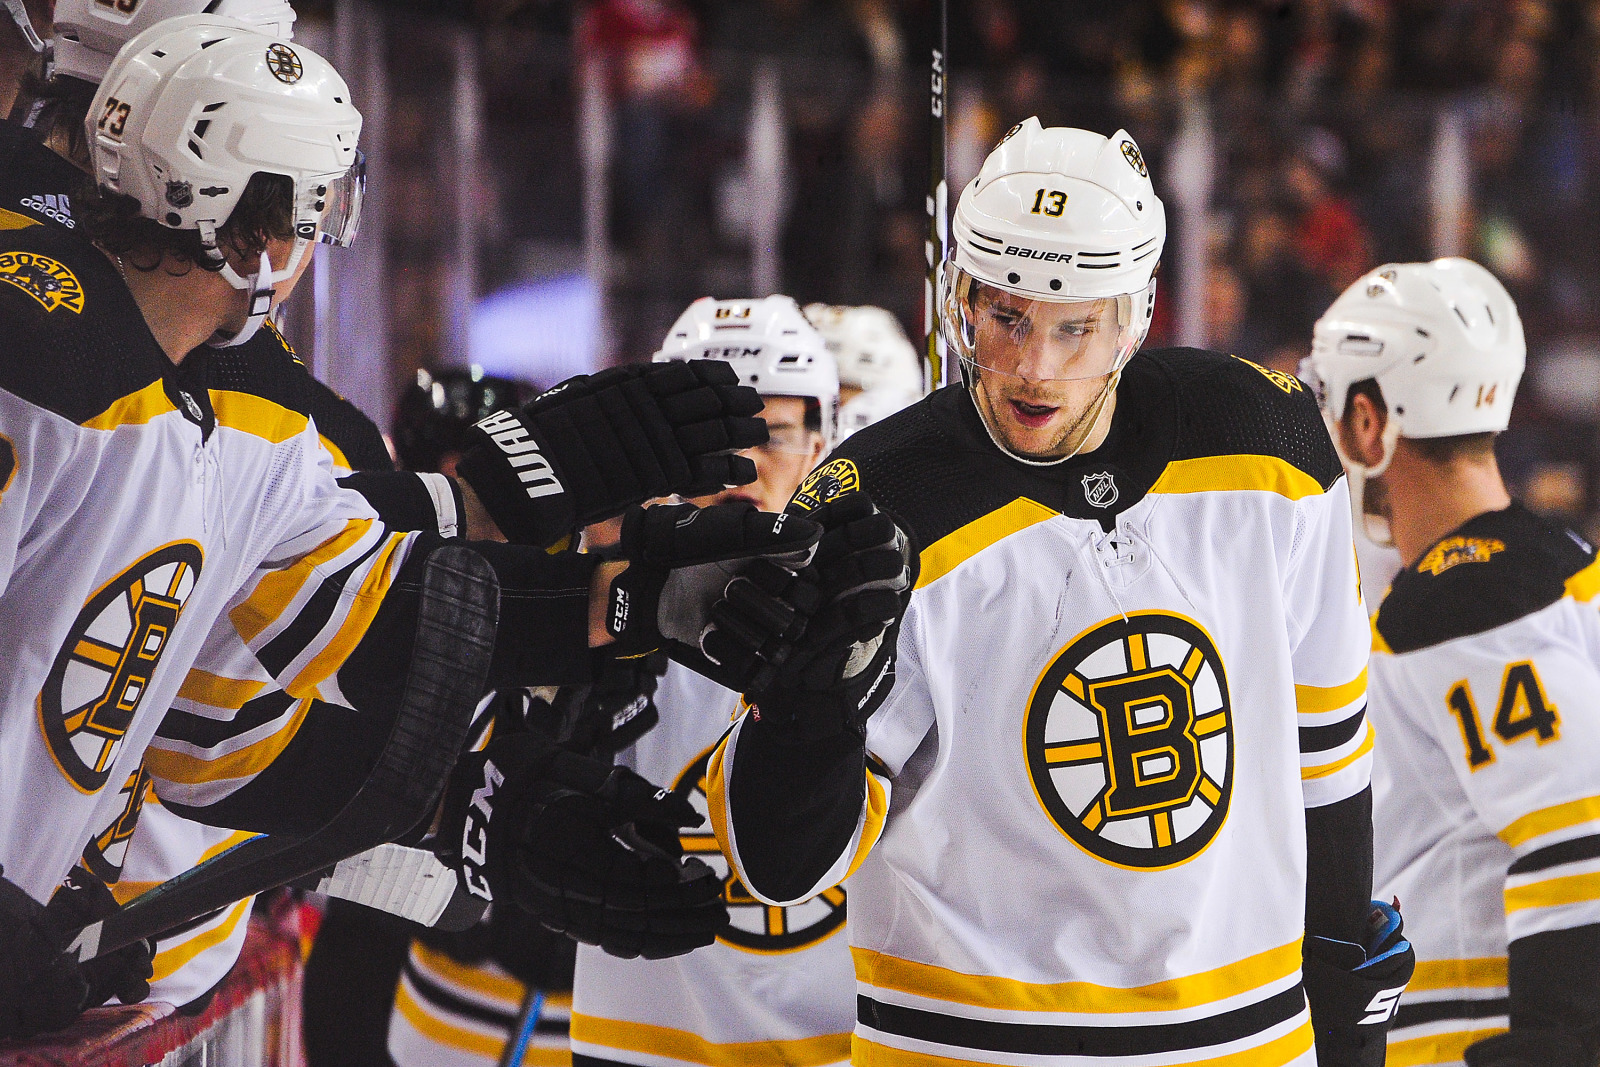 Boston Bruins: Charlie Coyle a huge difference in win over Flames